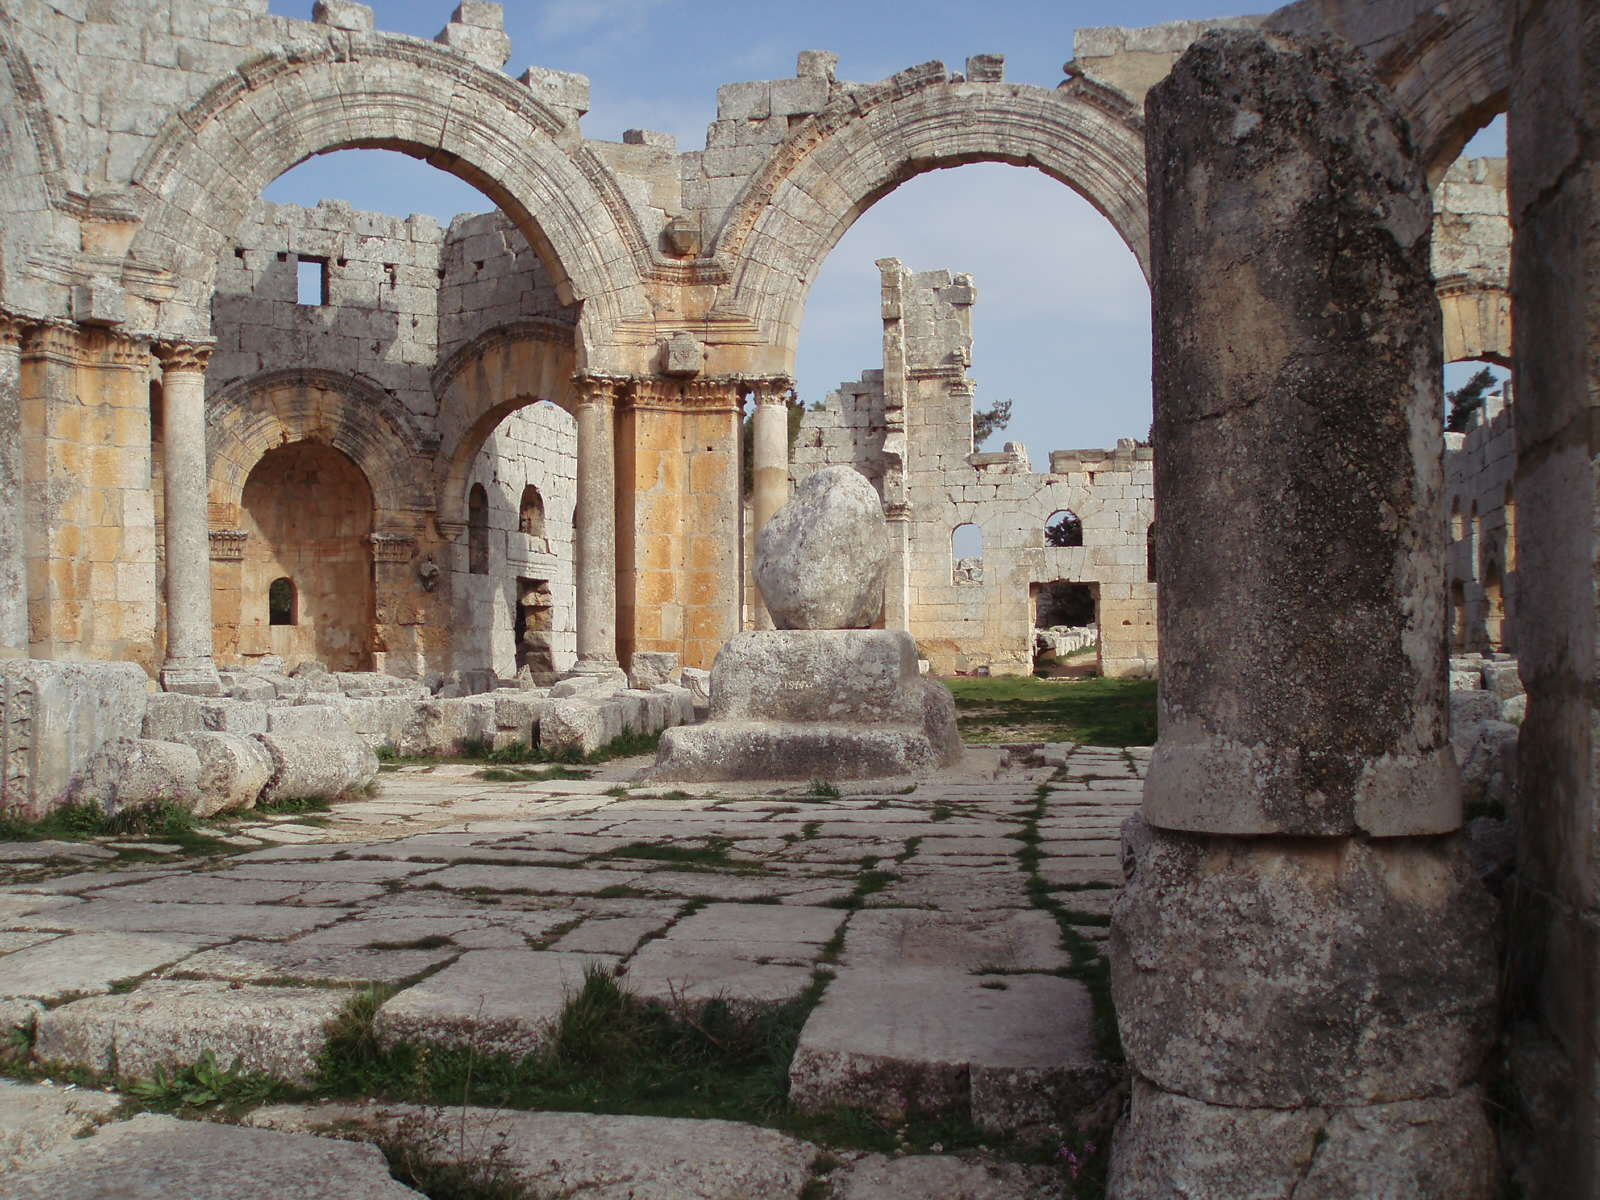 The destruction of heritage and history during wartimes